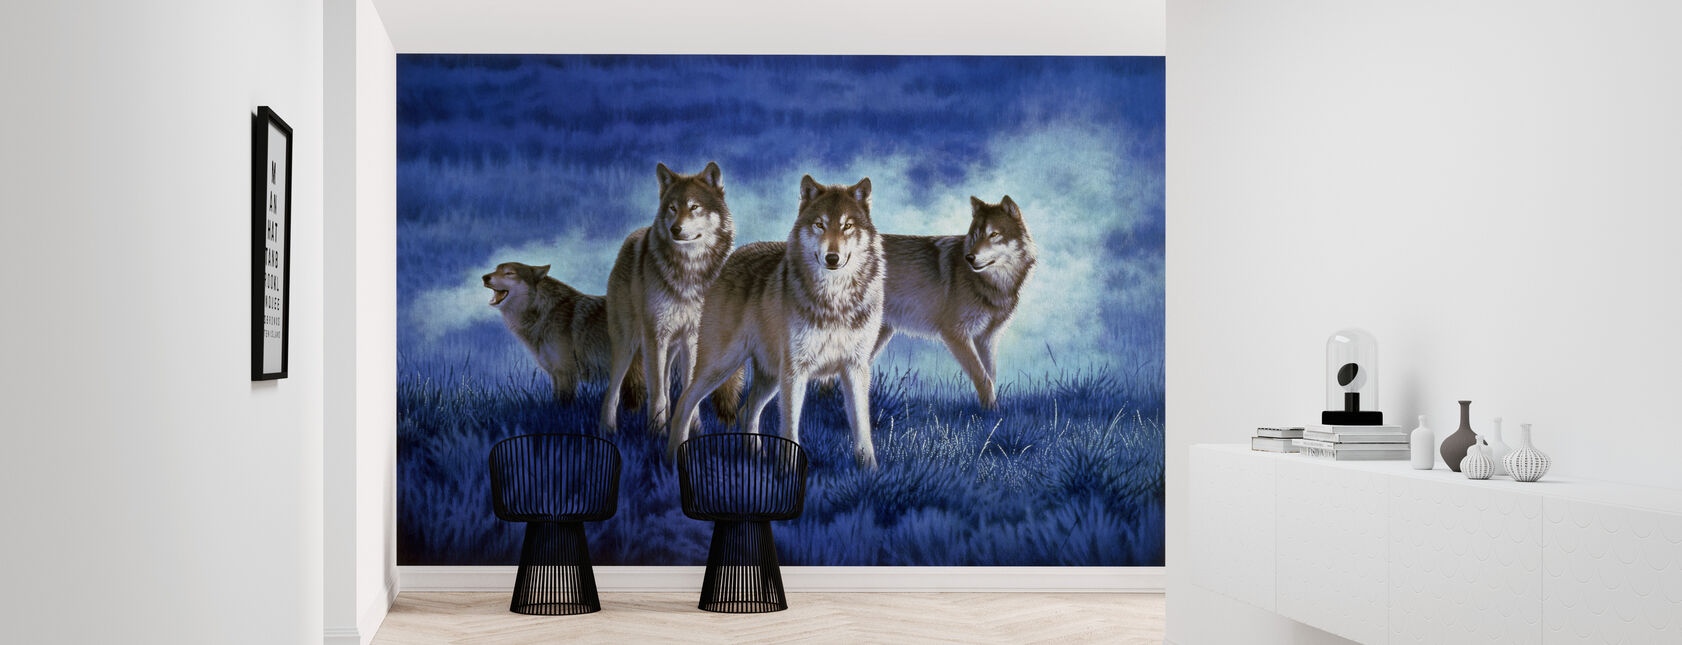 Wolves - Wallpaper - Hallway